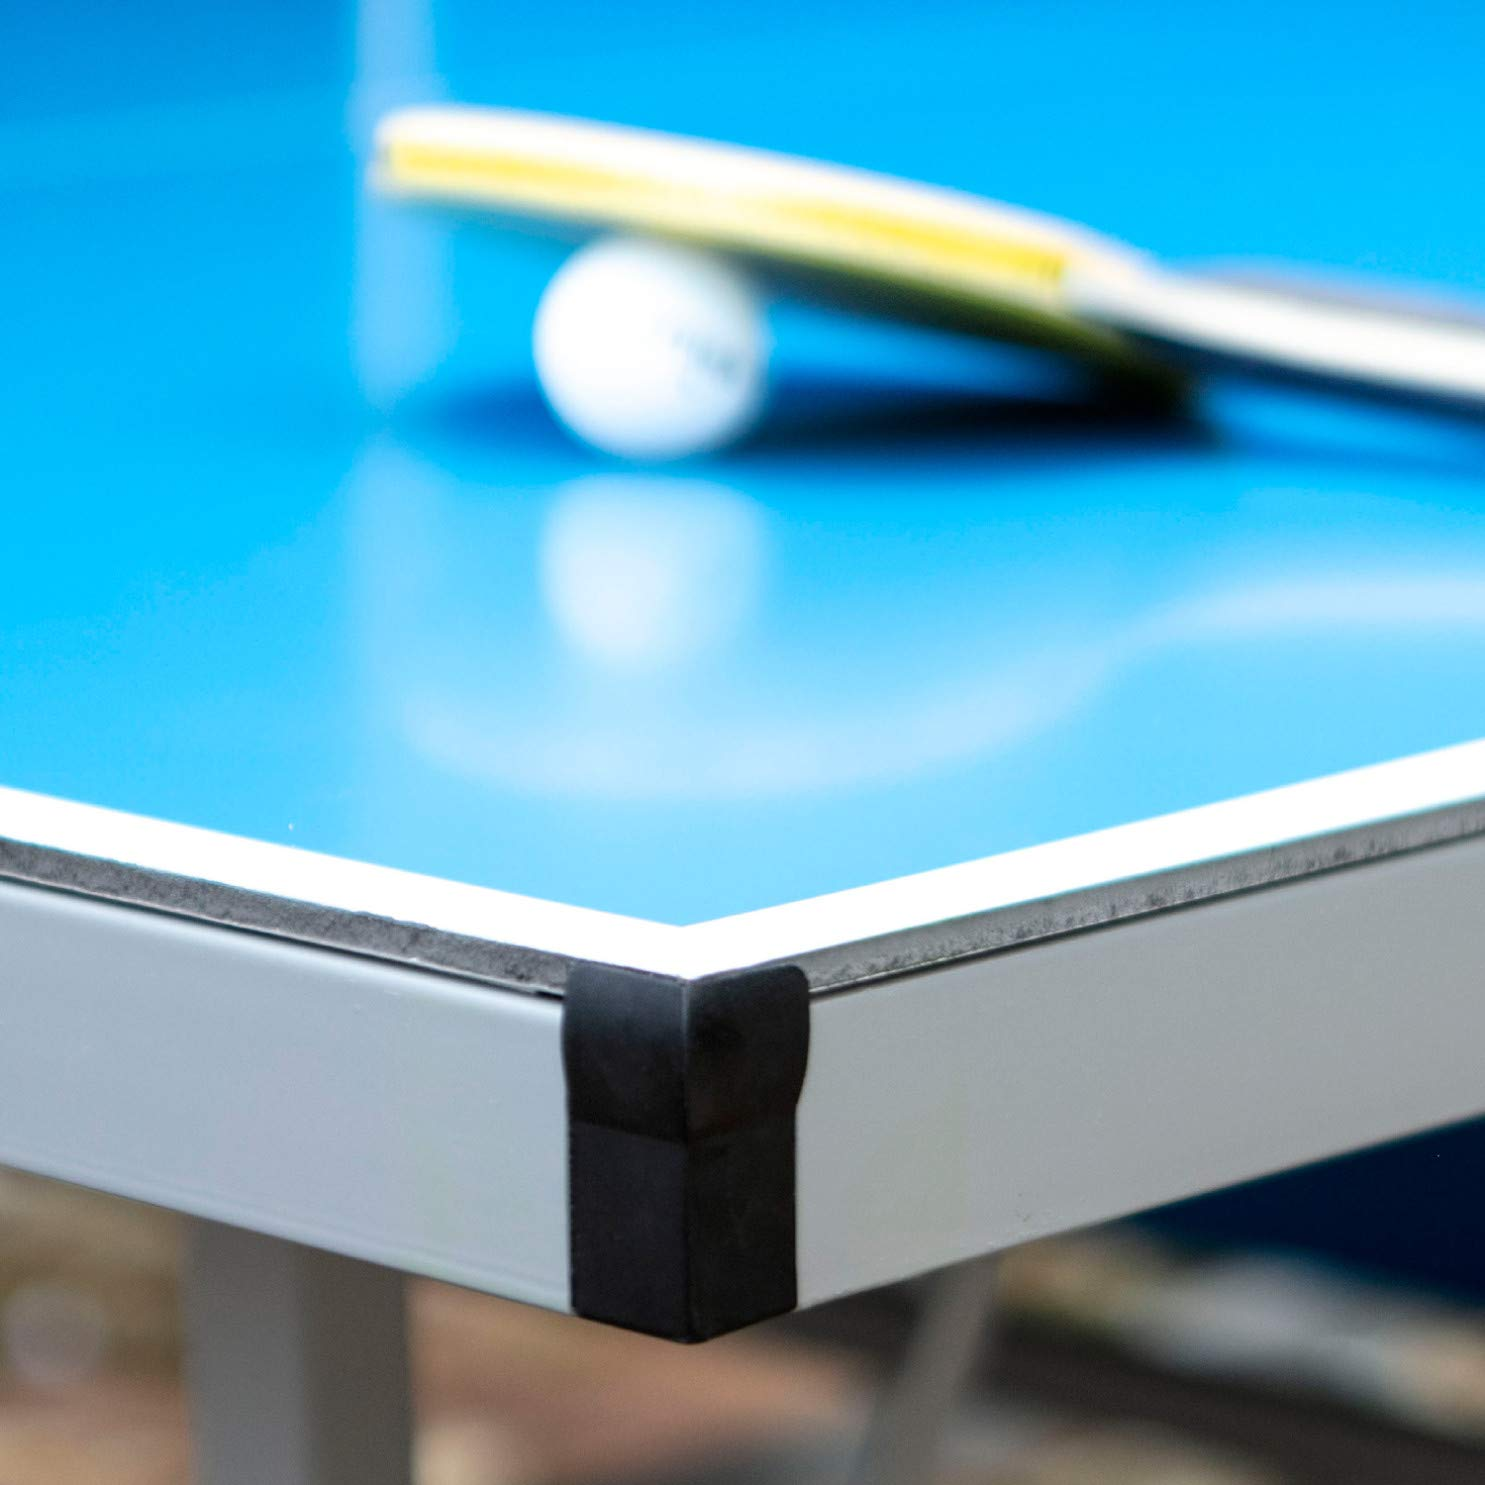 stiga-outdoor-table-tennis-table-review-934